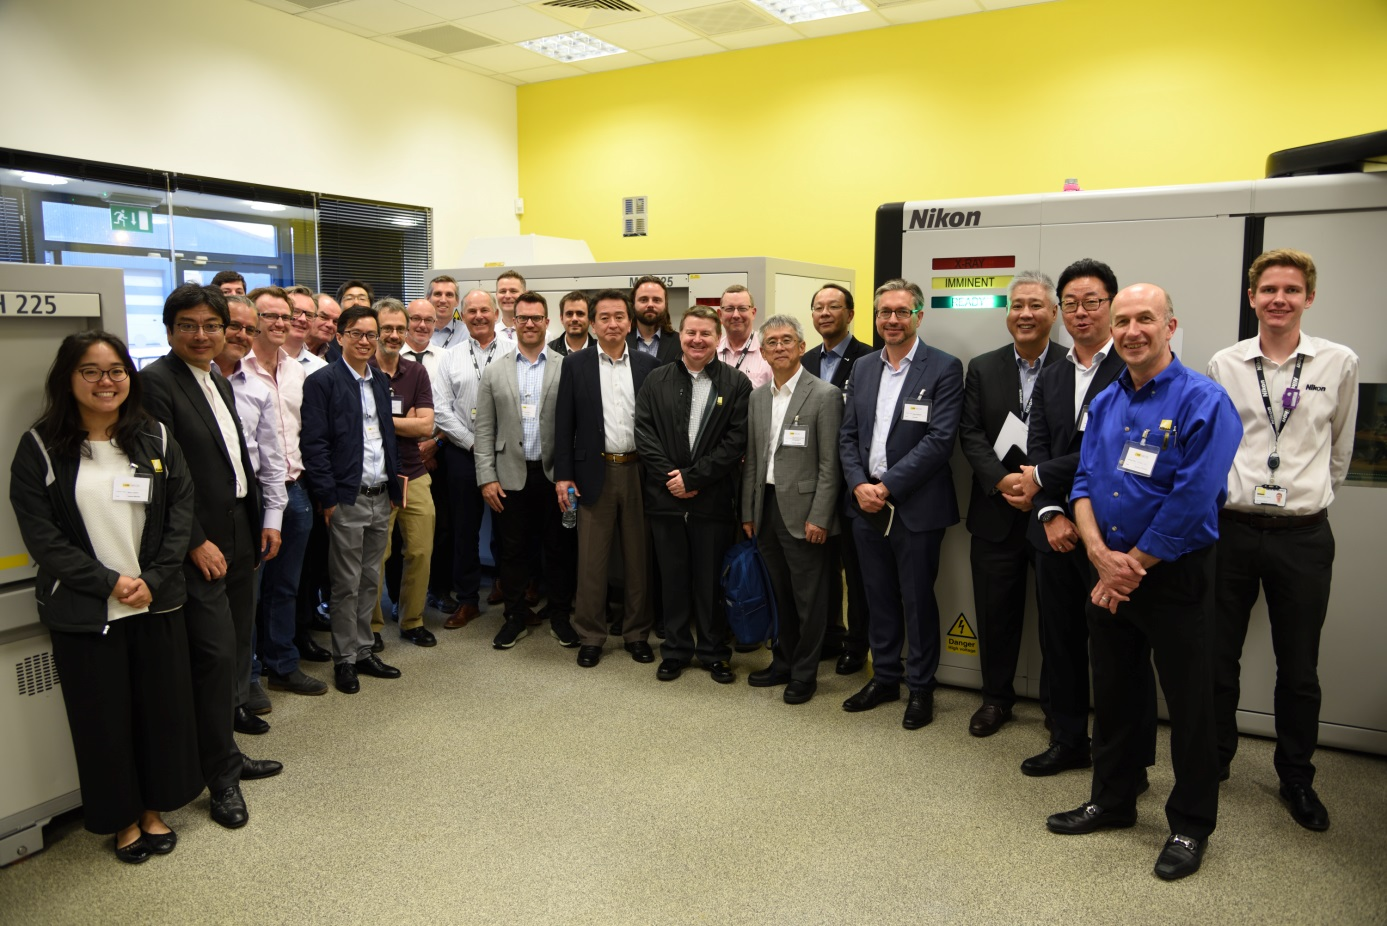 The attendees and speakers at Nikon's global X-ray User Forum in Tring, UK.